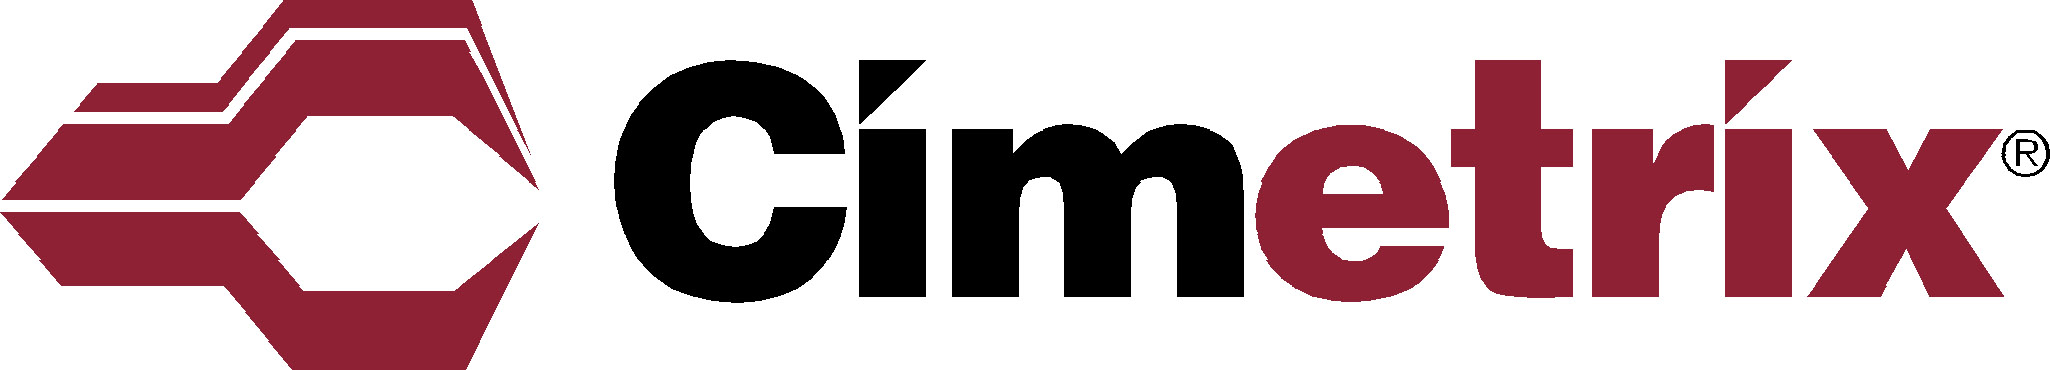 Cimetrix Inc. Logo